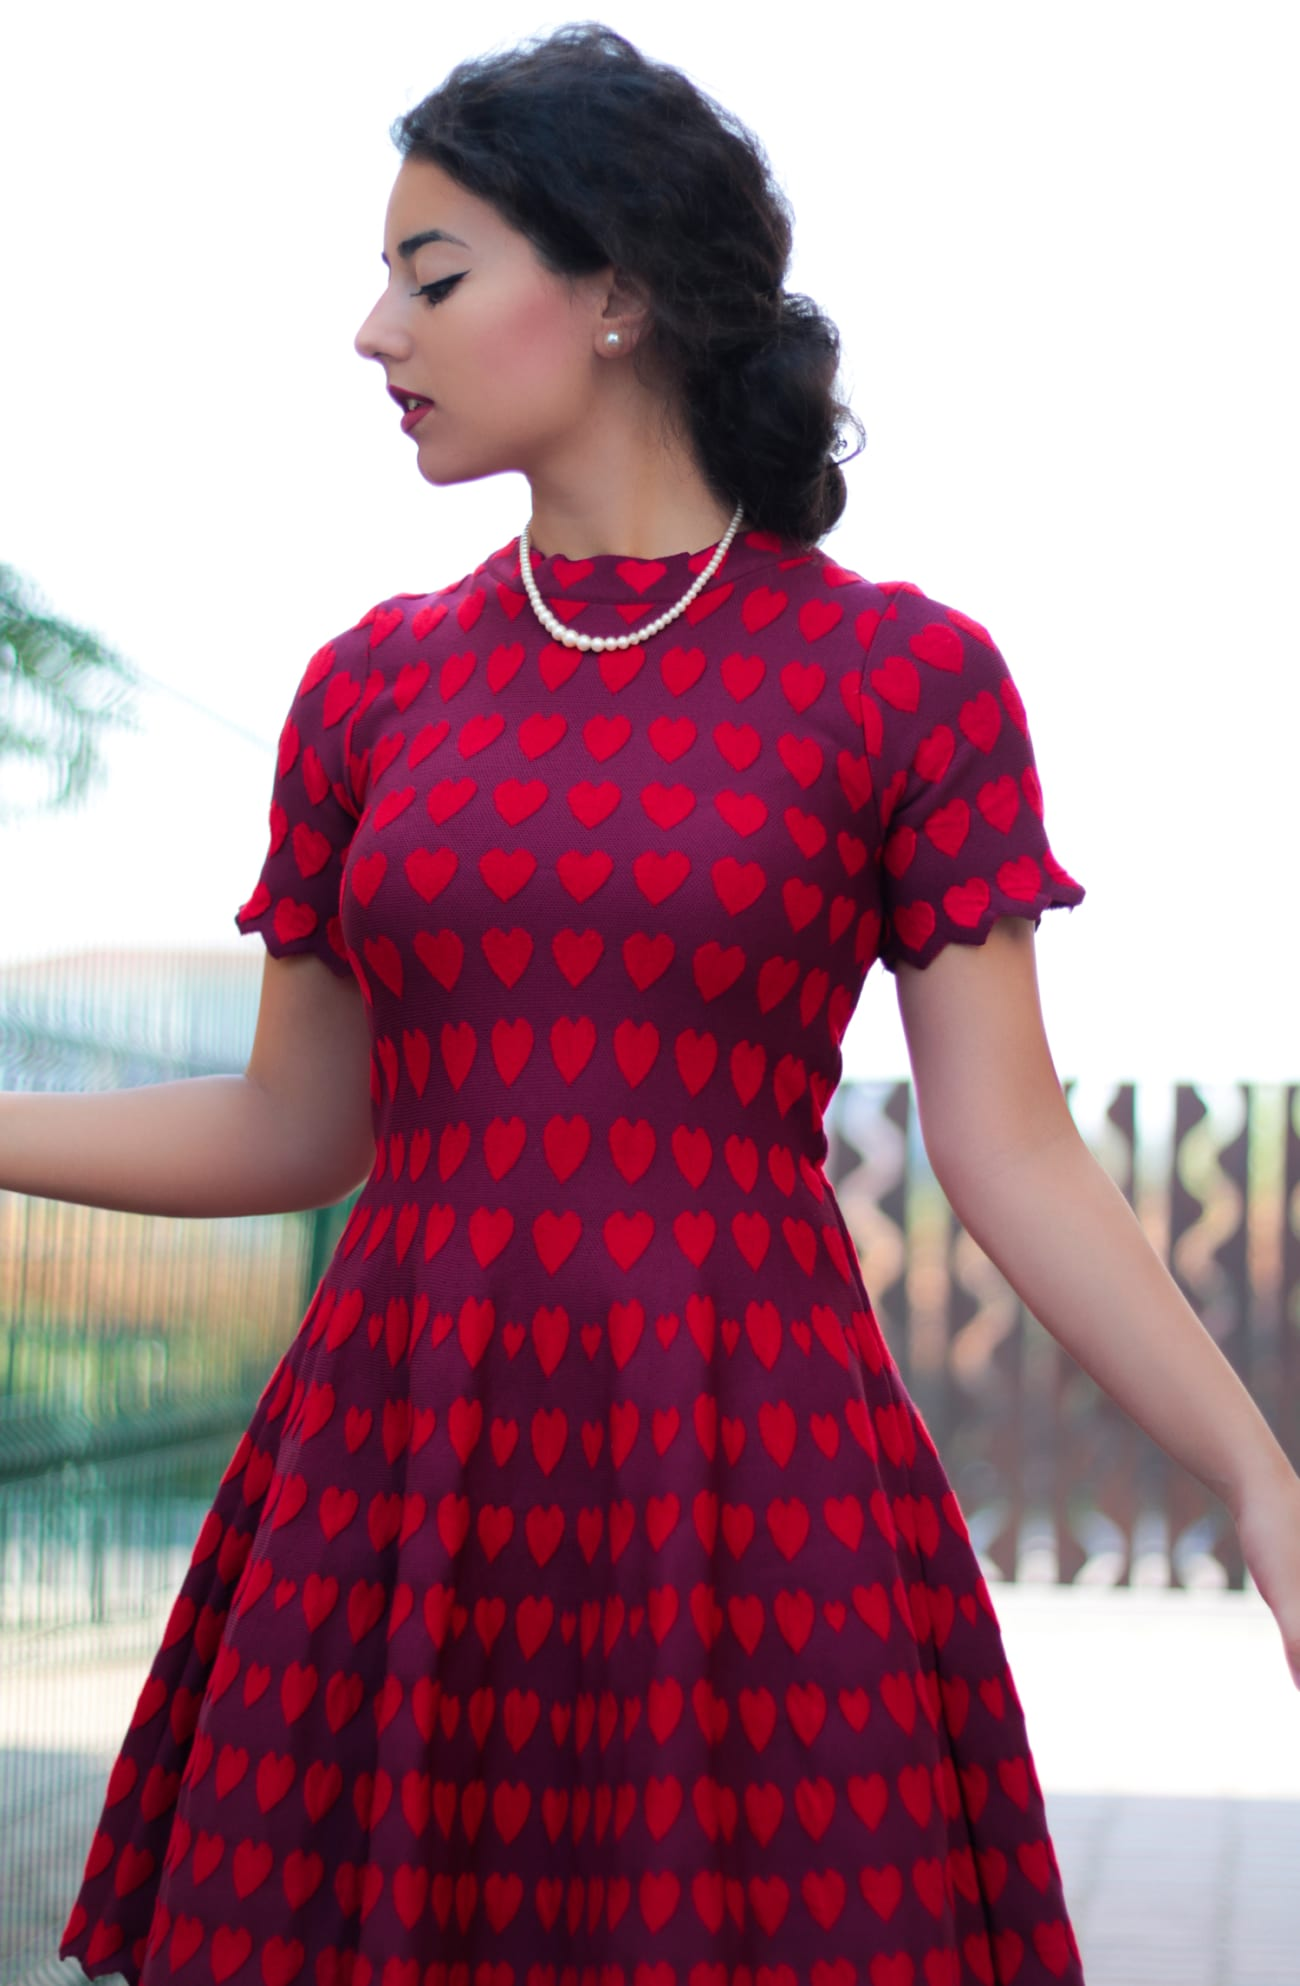 vintage comic book red hearts dress topfashion.com.ro old style pearls roxi rose (1)